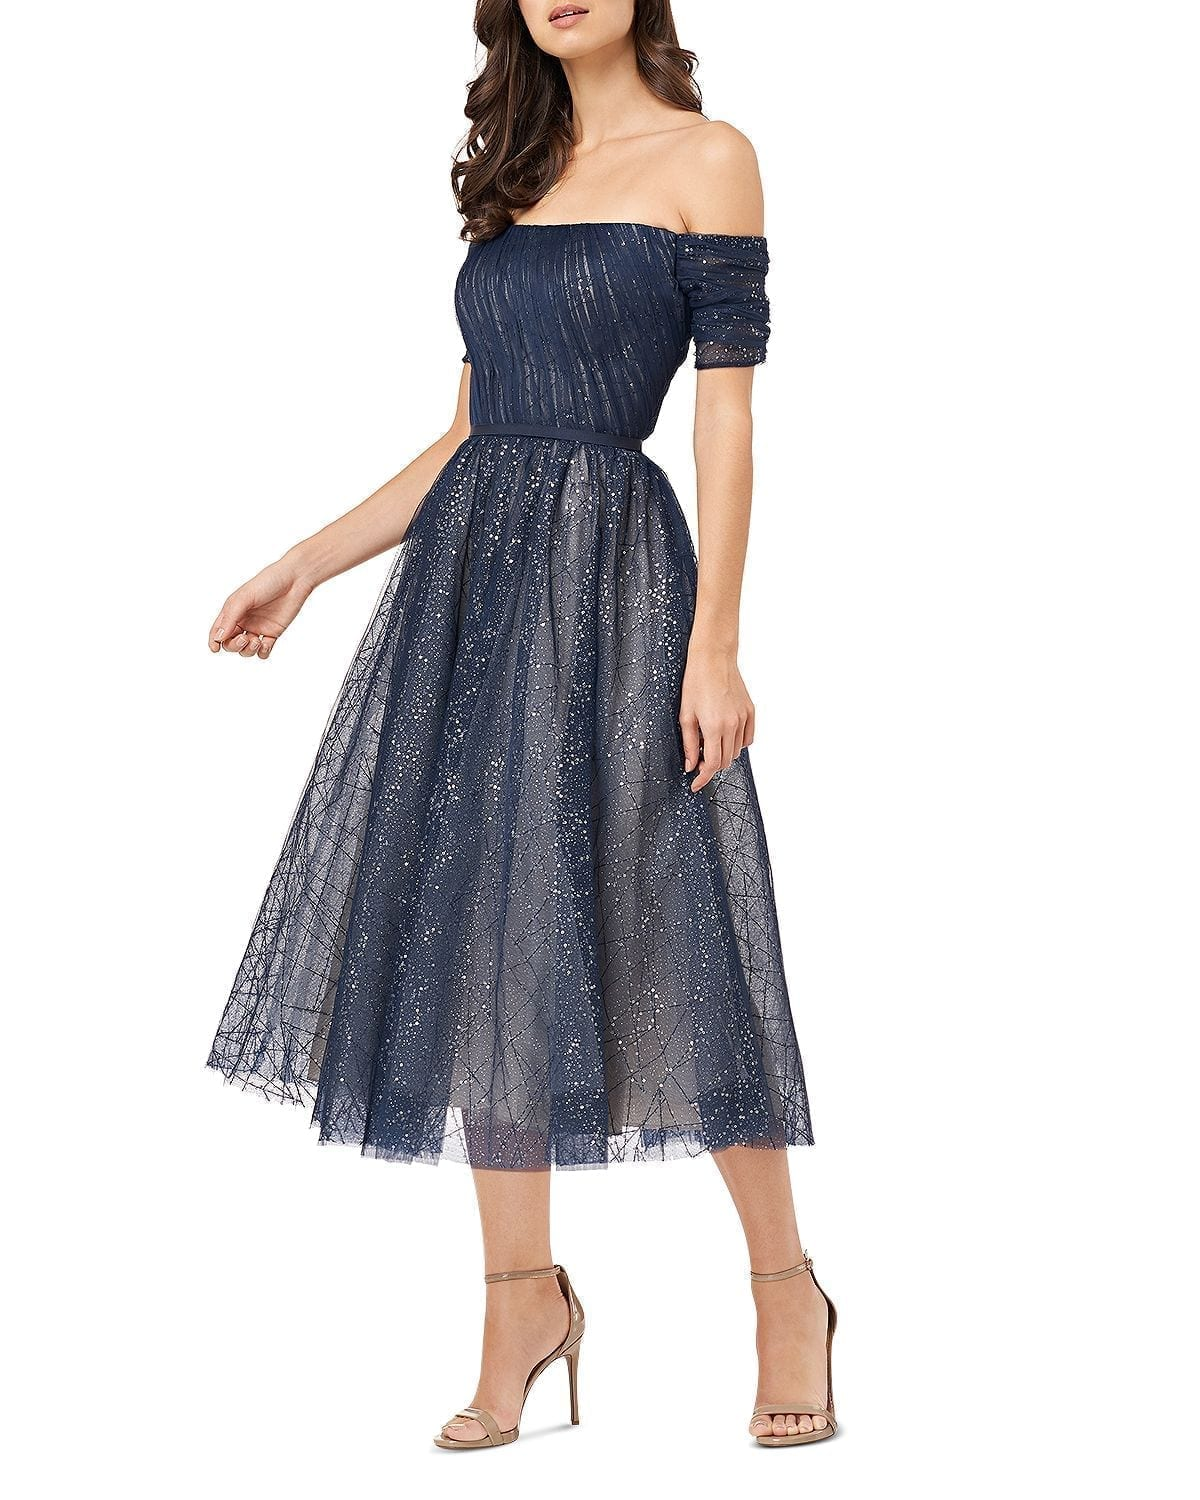 CARMEN MARC VALVO INFUSION Infusion Off-the-Shoulder Sparkle Mesh Dress